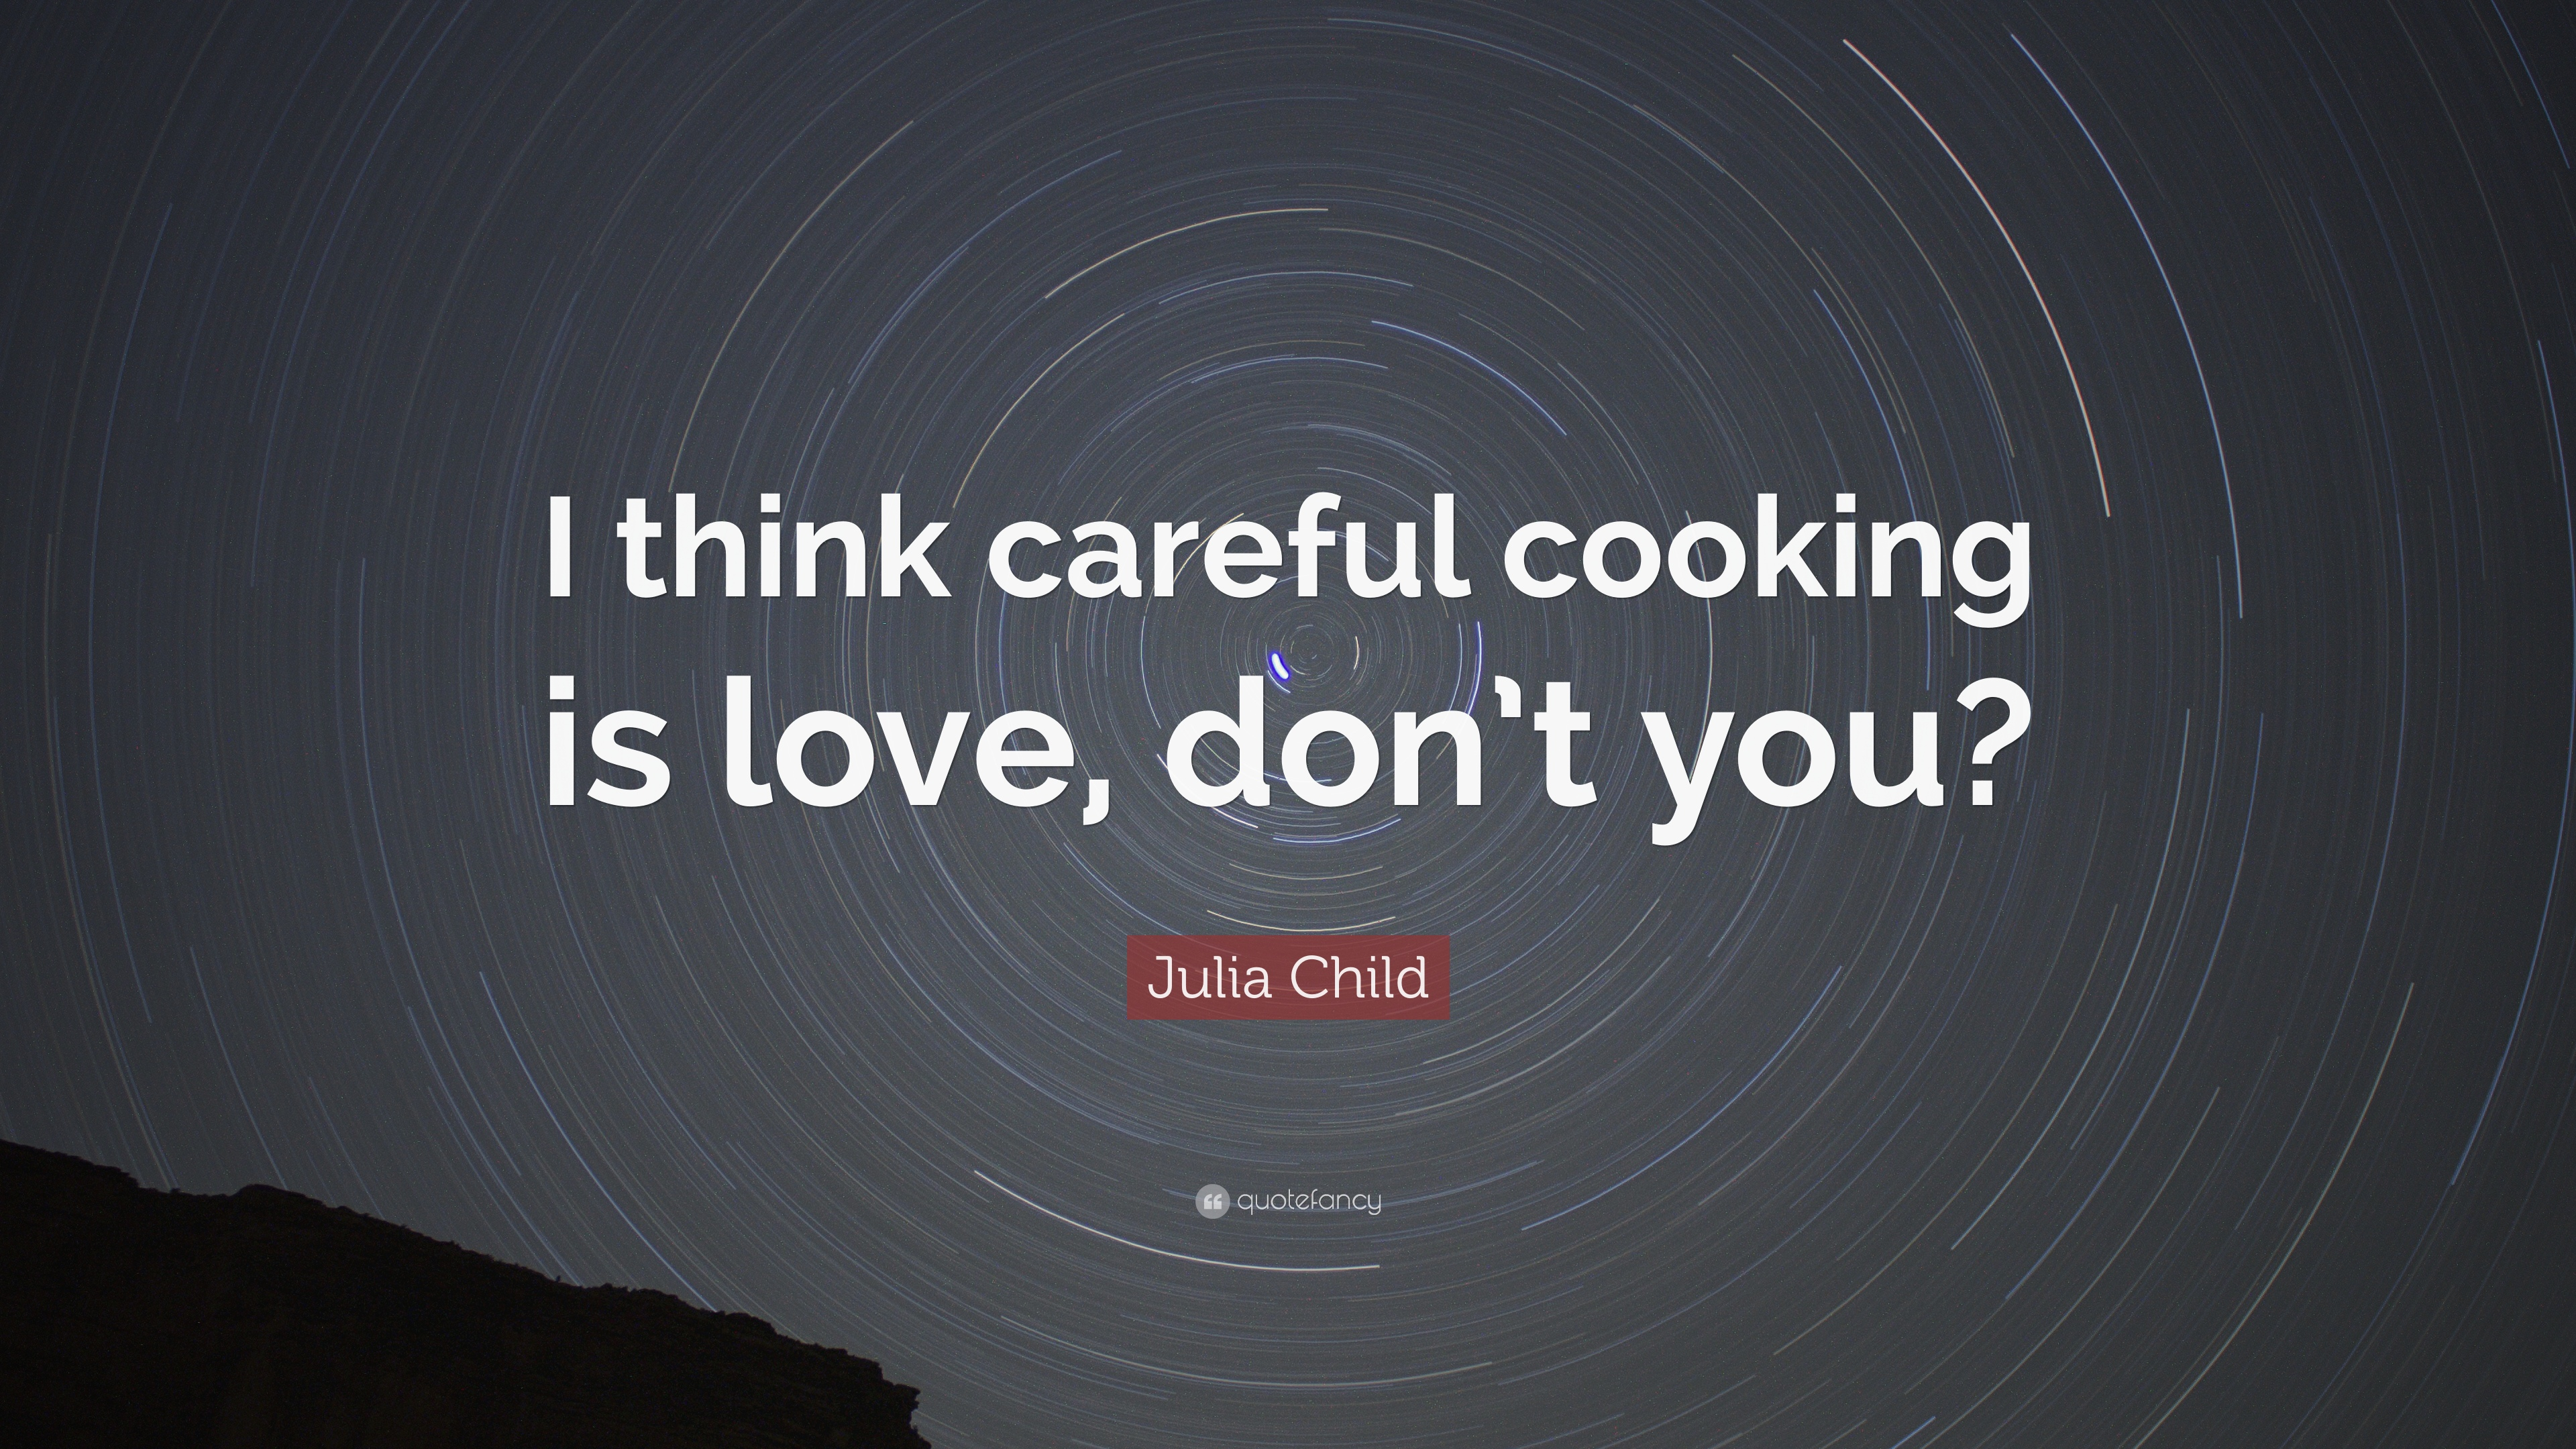 julia child quotes 100 wallpapers quotefancy